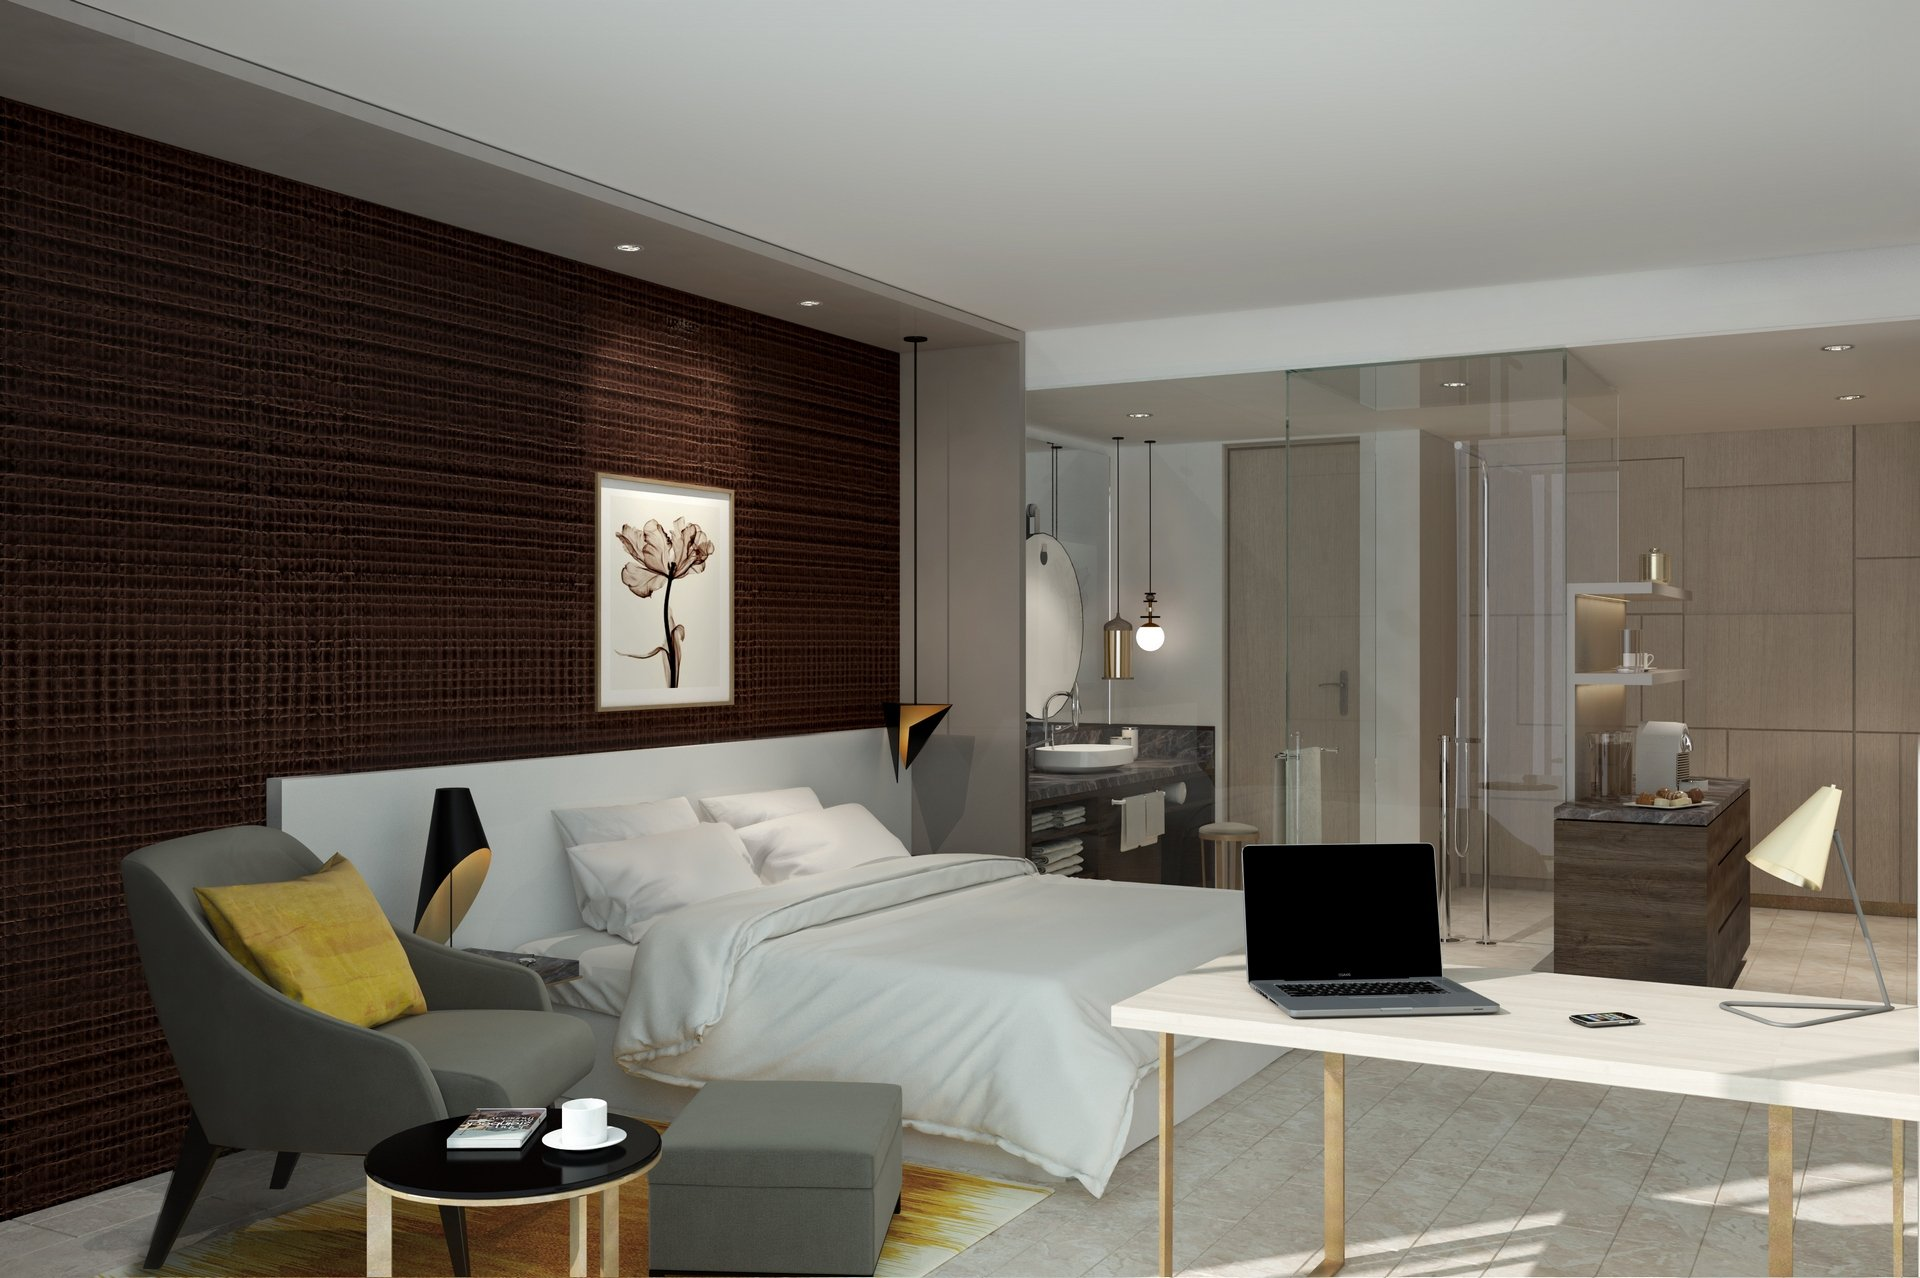 HOTEL UNIT VISUALIZATION IN UAE